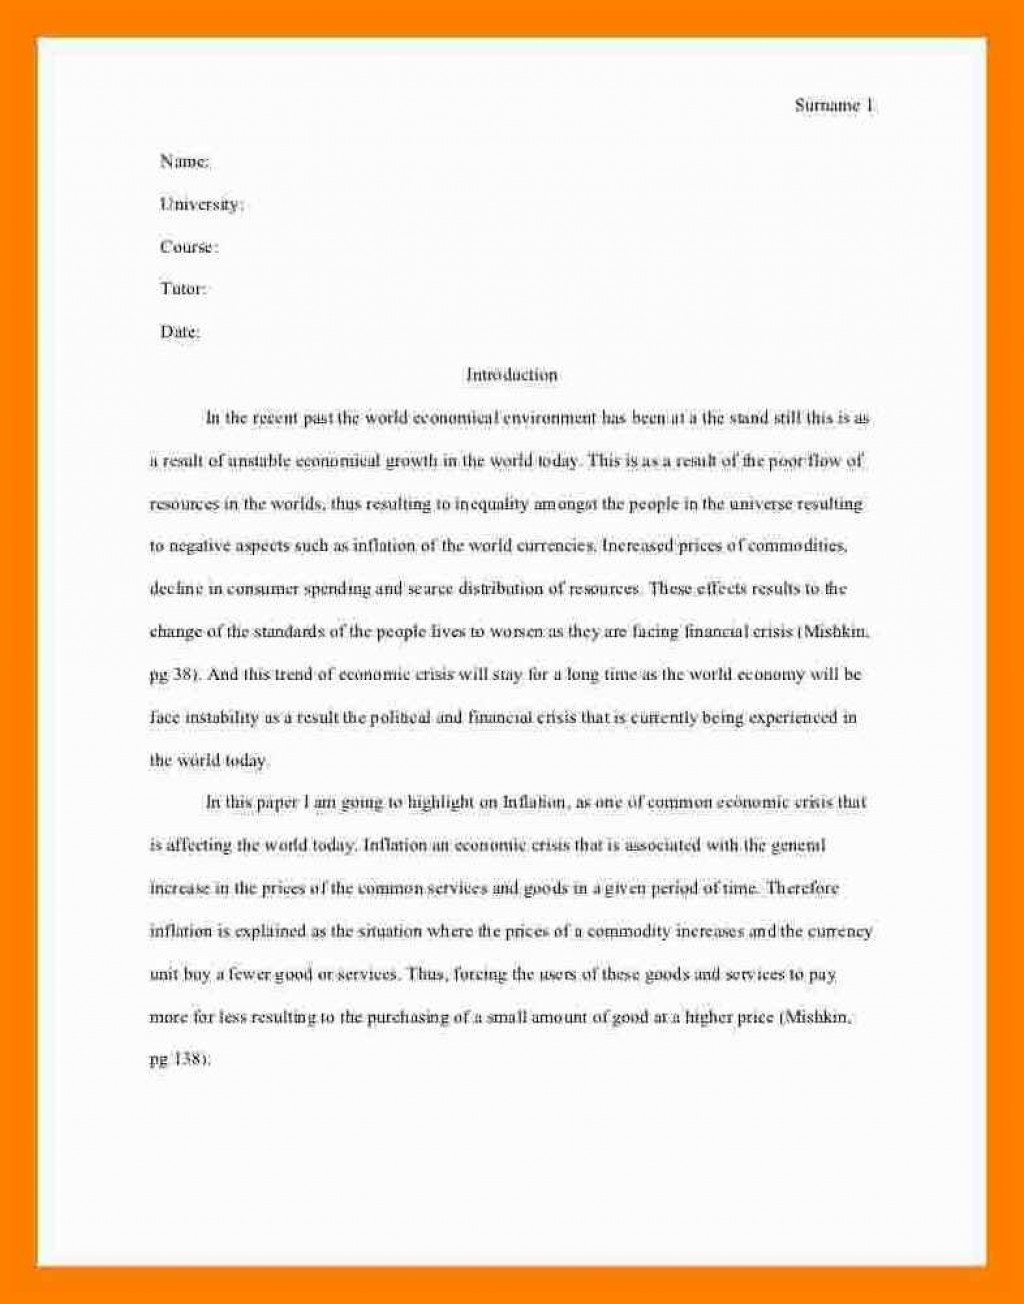 005 Essay Example Asa Format Sample Mla Style One Aspect Of The Current Economic Crisis Remarkable Reference Generator Heading Citation Large